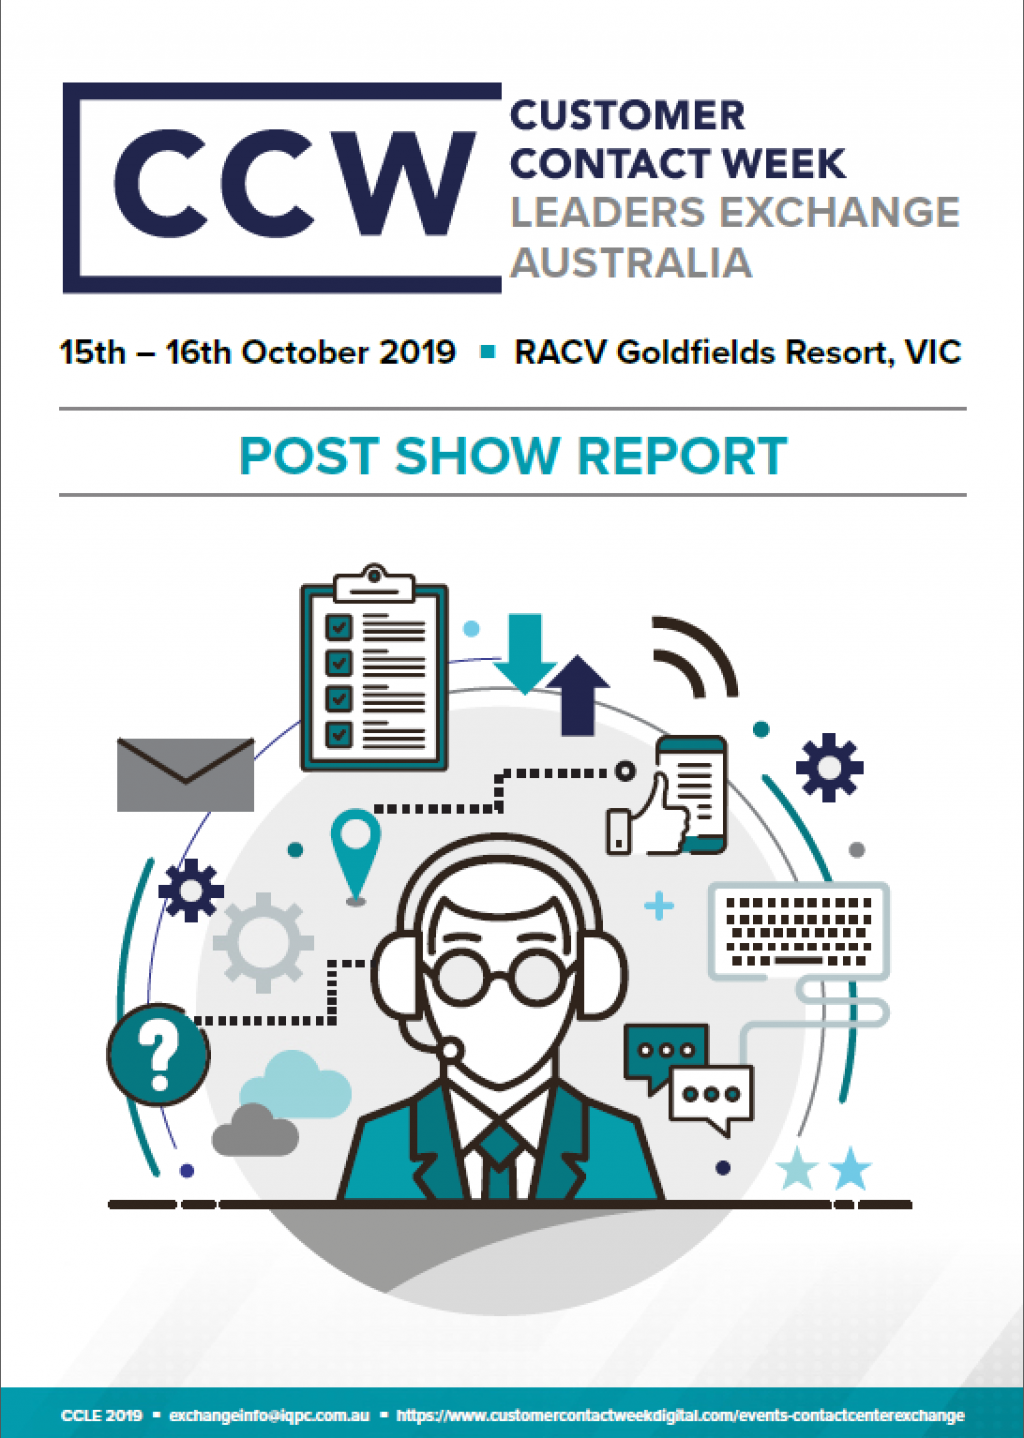 Customer Contact Leaders Exchange 2019 Post Show Report